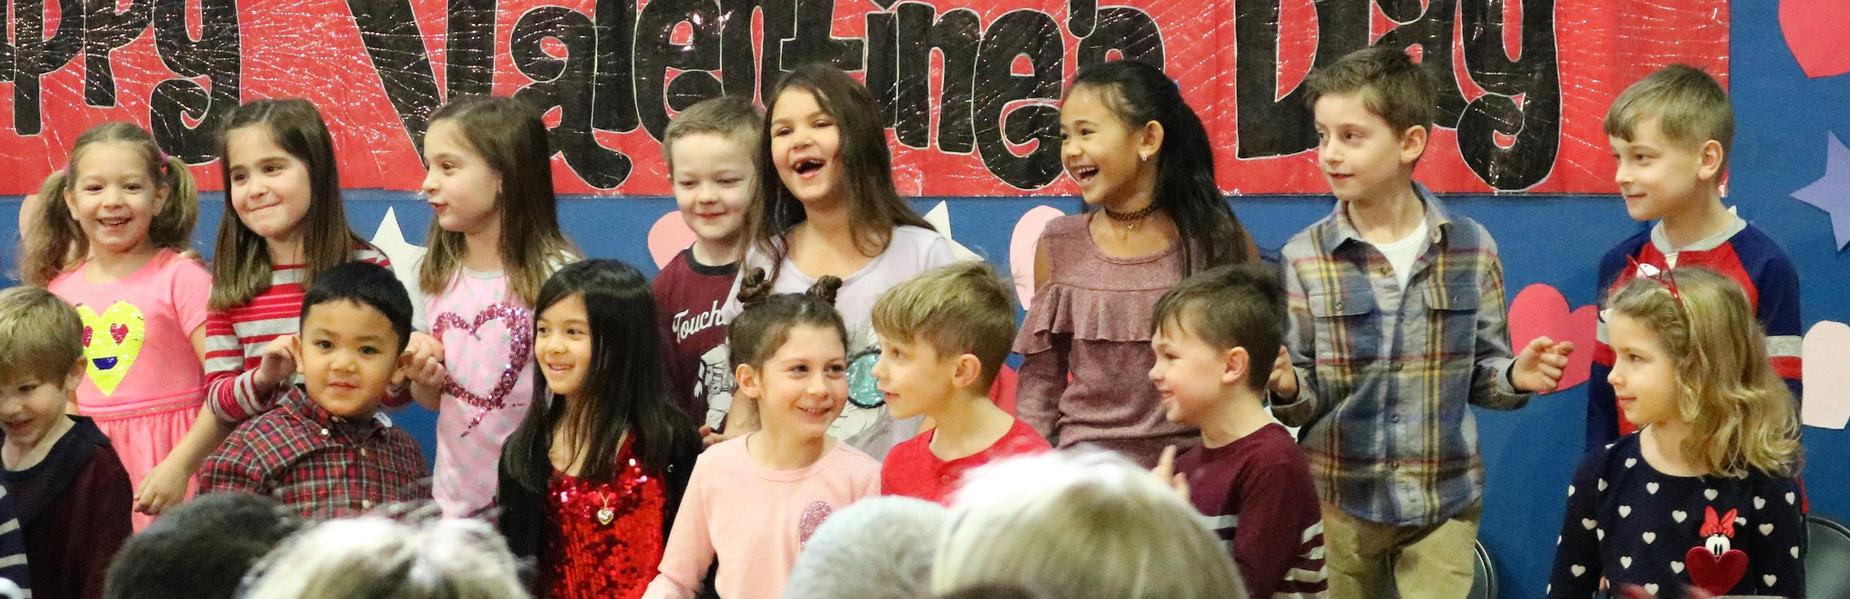 1st graders enjoy a Valentine's Day singalong at Washington School.